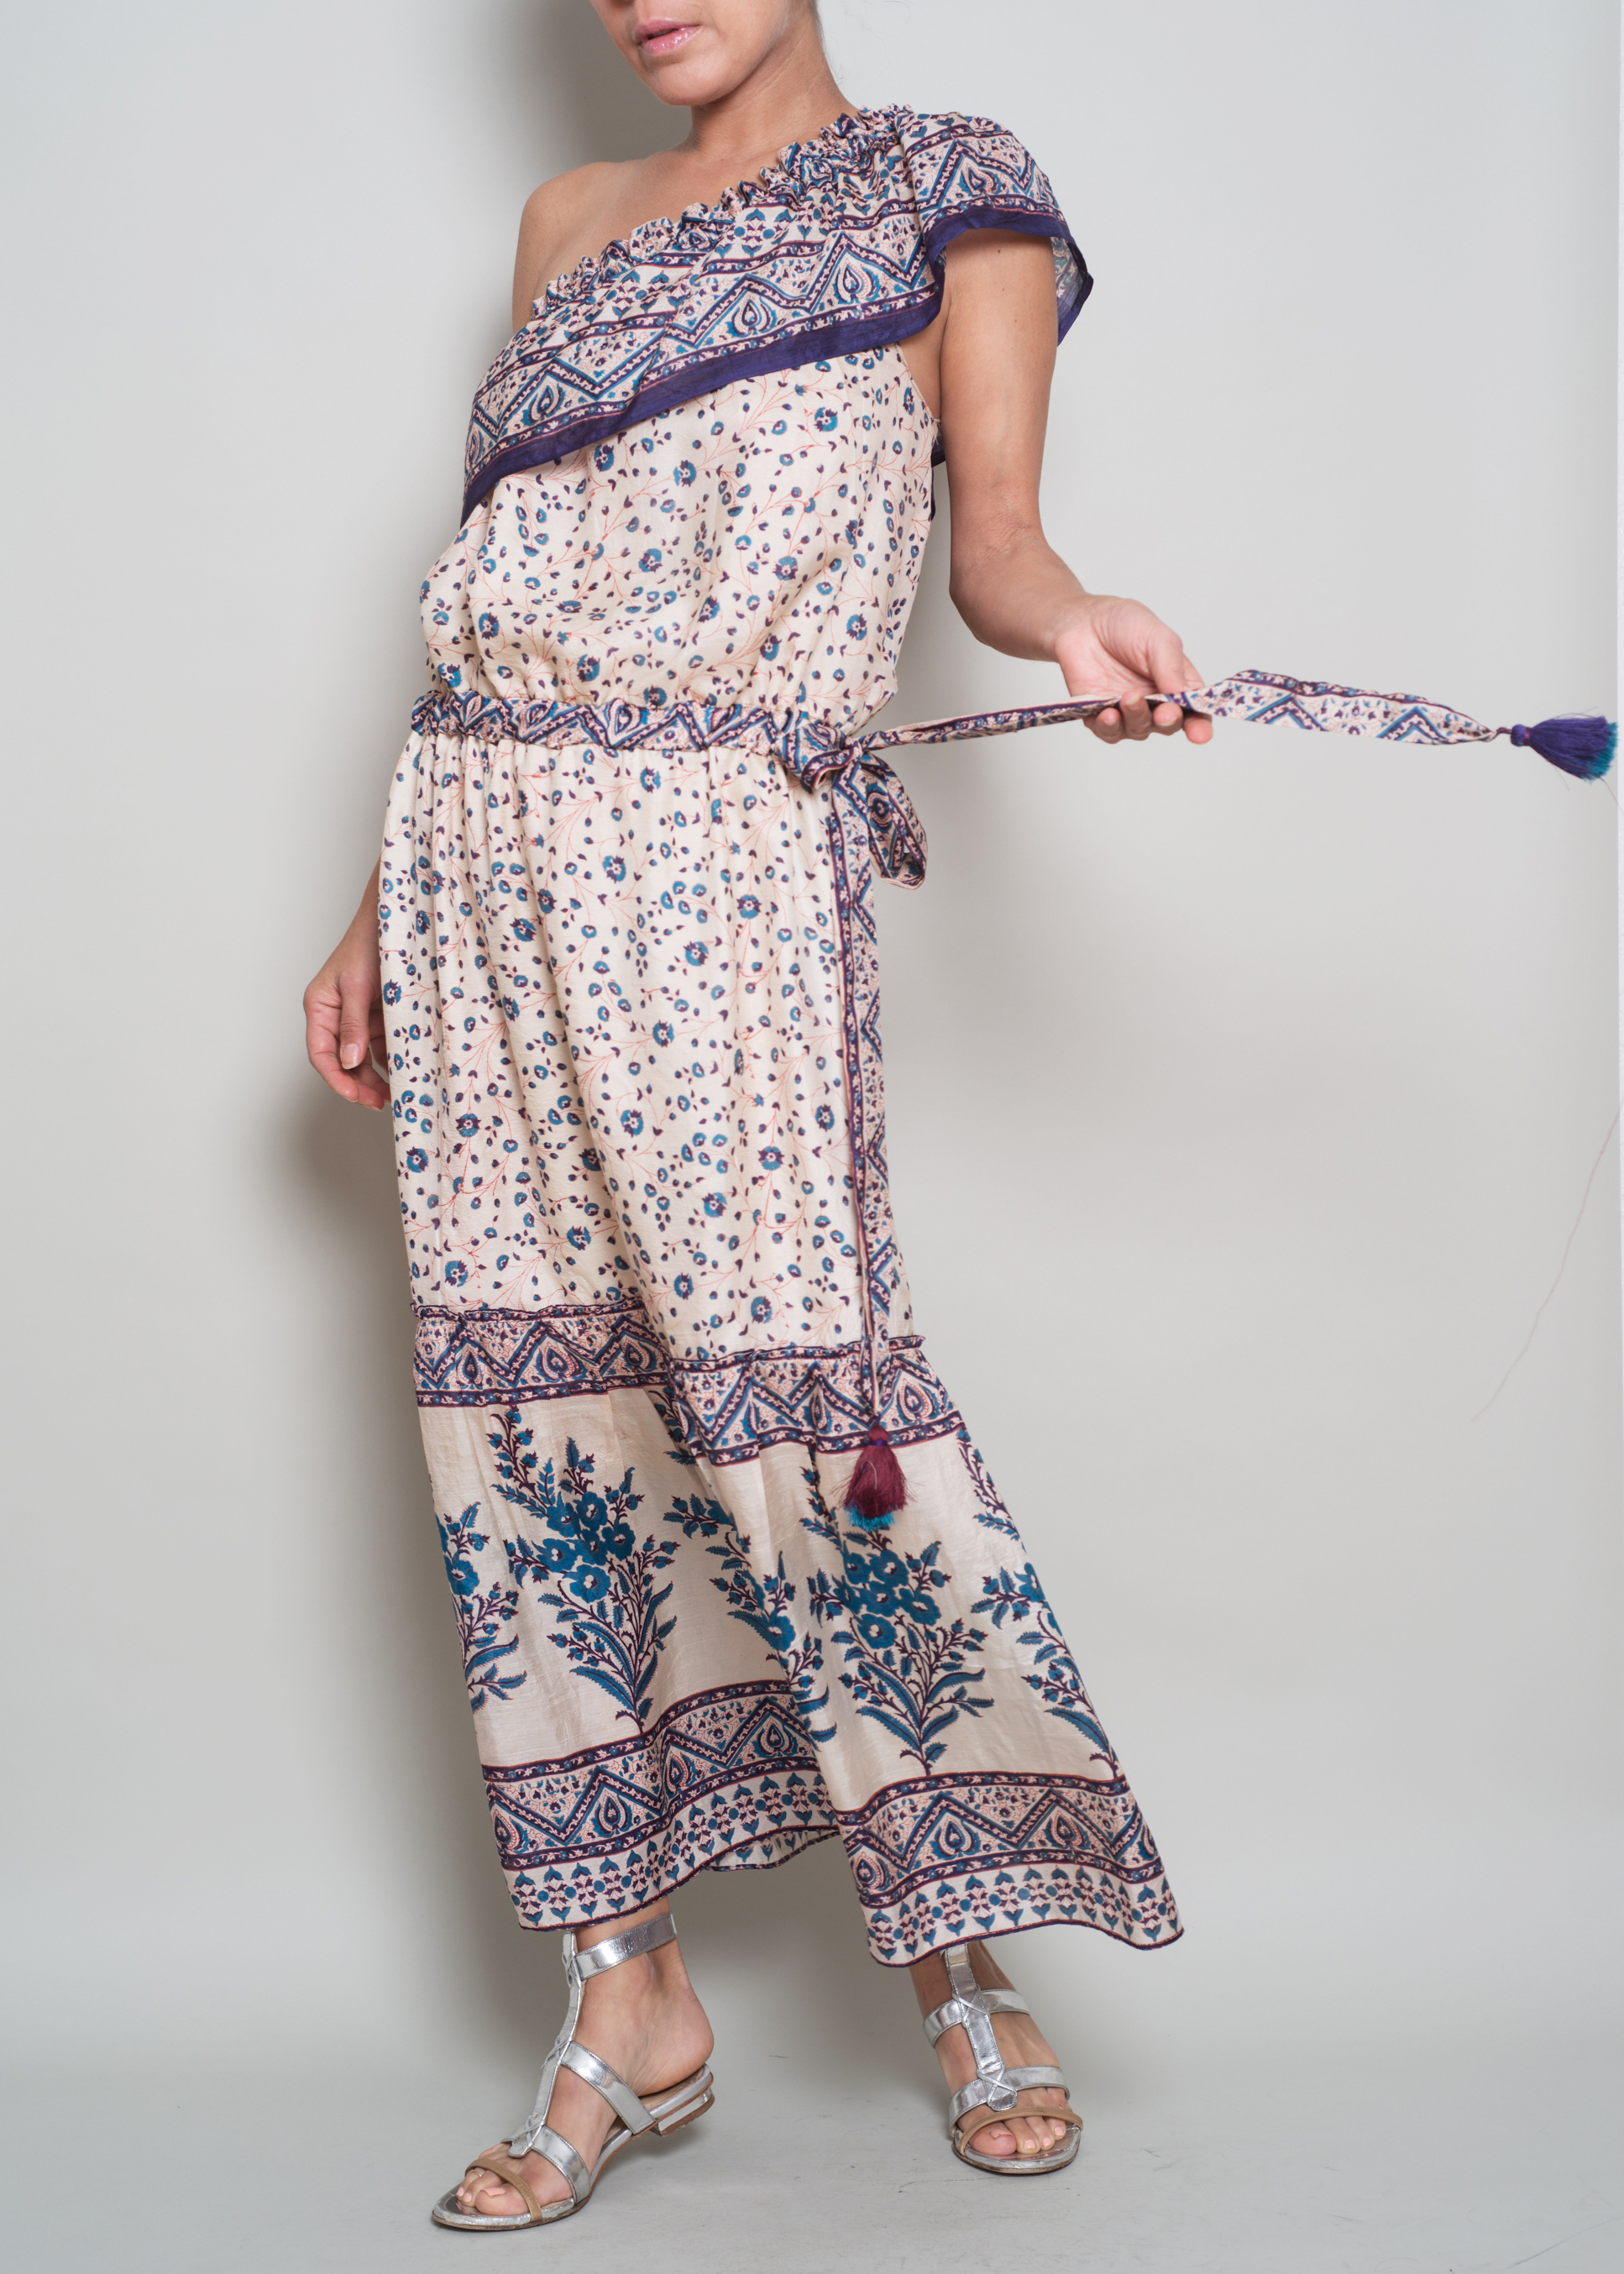 Le_Marie_Collection_silk_Dresses044.jpg